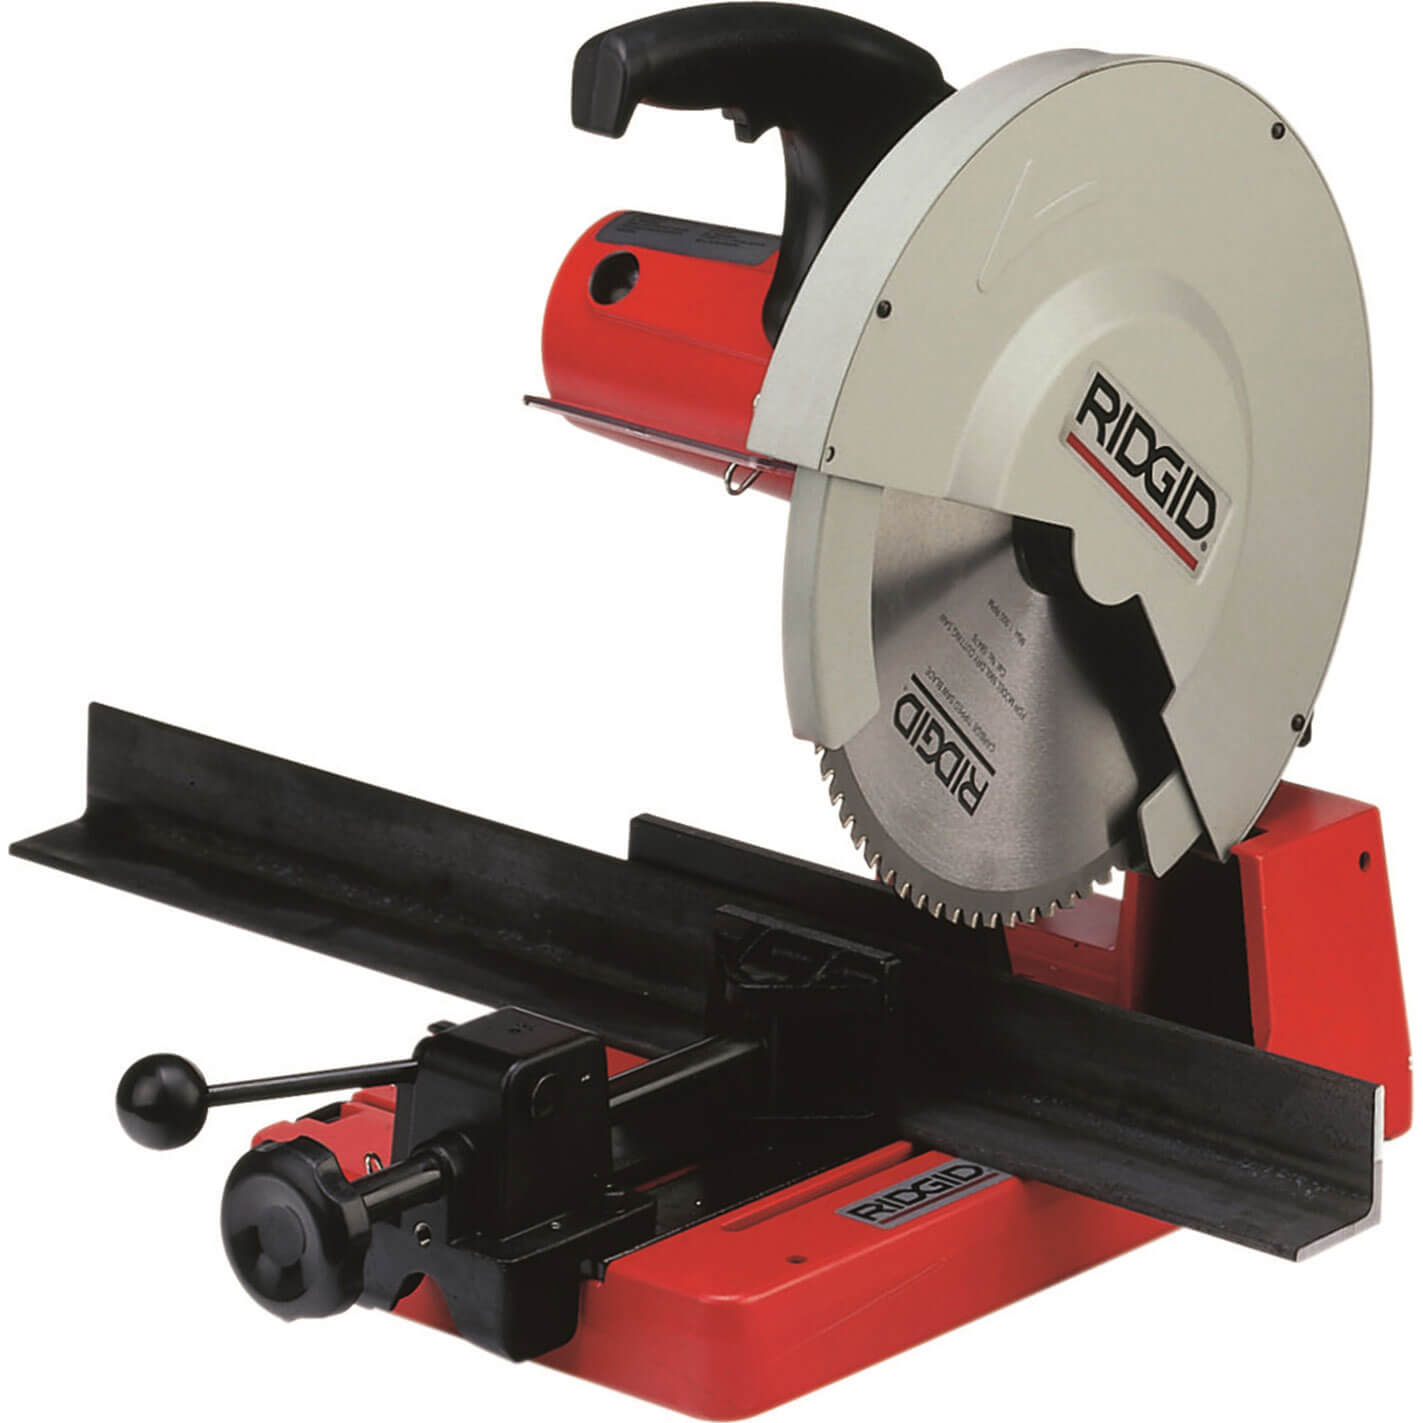 Image of Ridgid 590L Dry Cutting Metal Cut Off Saw 355mm 110v